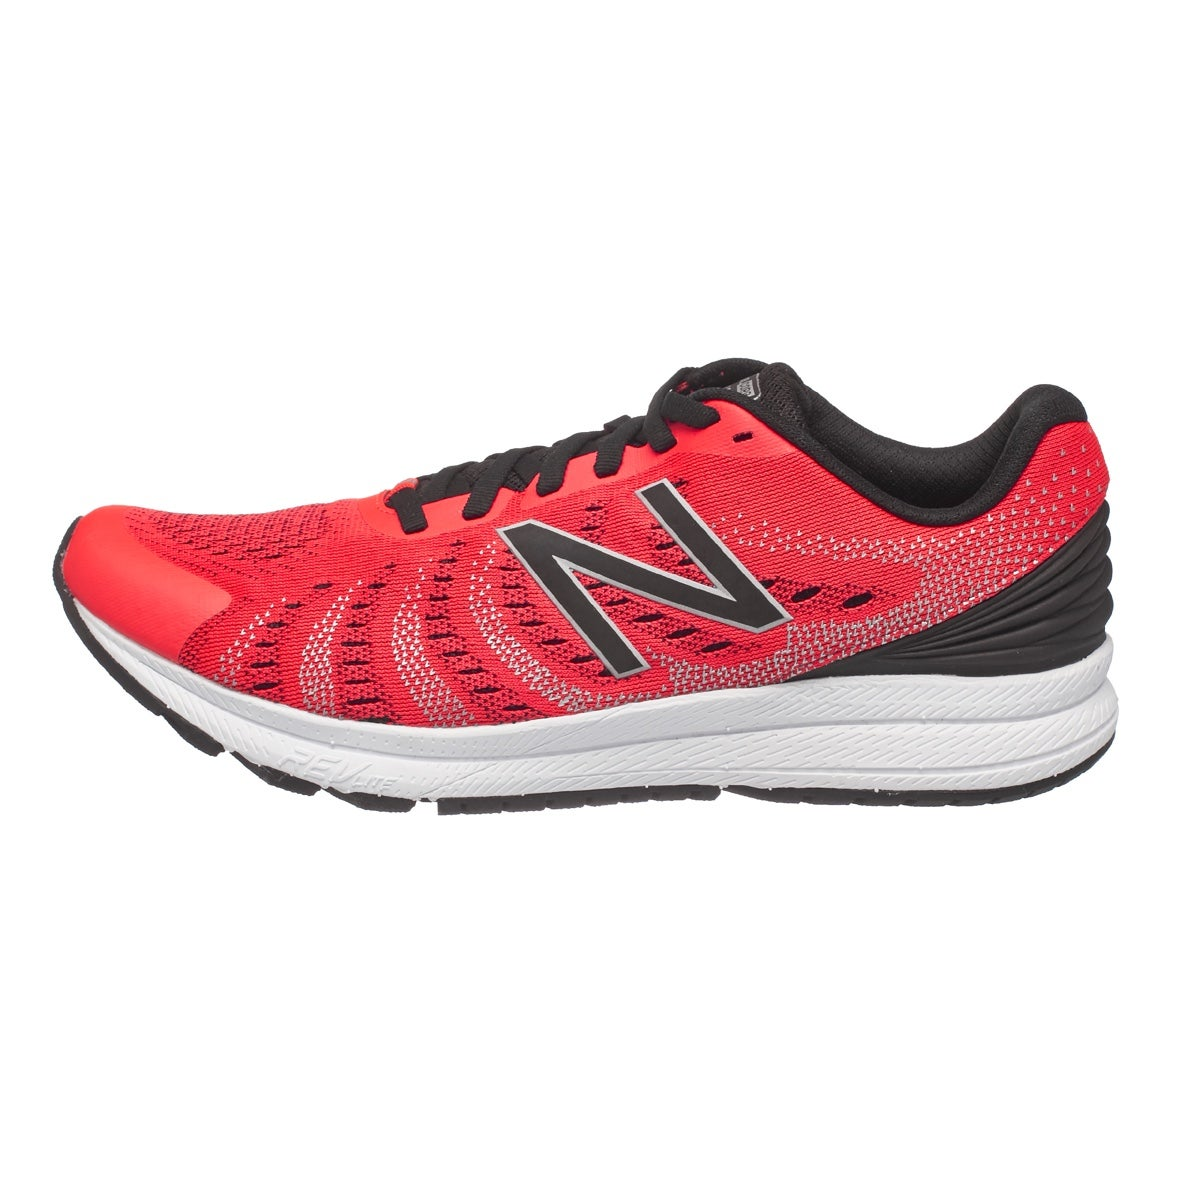 new balance fuelcore rush v3 men 39 s shoes energy red blk. Black Bedroom Furniture Sets. Home Design Ideas